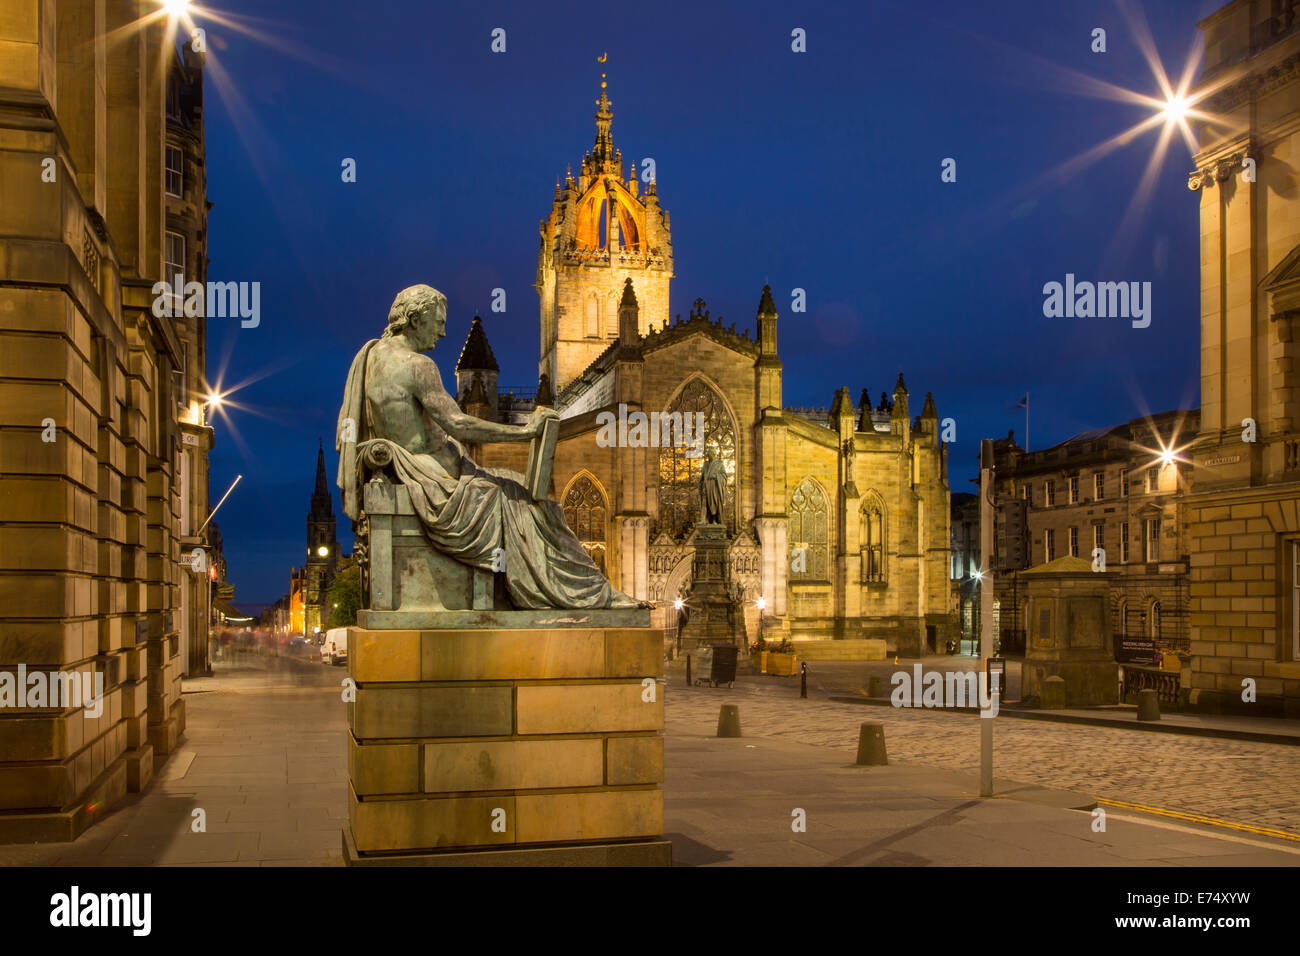 Twilight view down the Royal Mile with St. Giles Cathedral and statue of Scottish philosopher David Hume, Edinburgh, - Stock Image